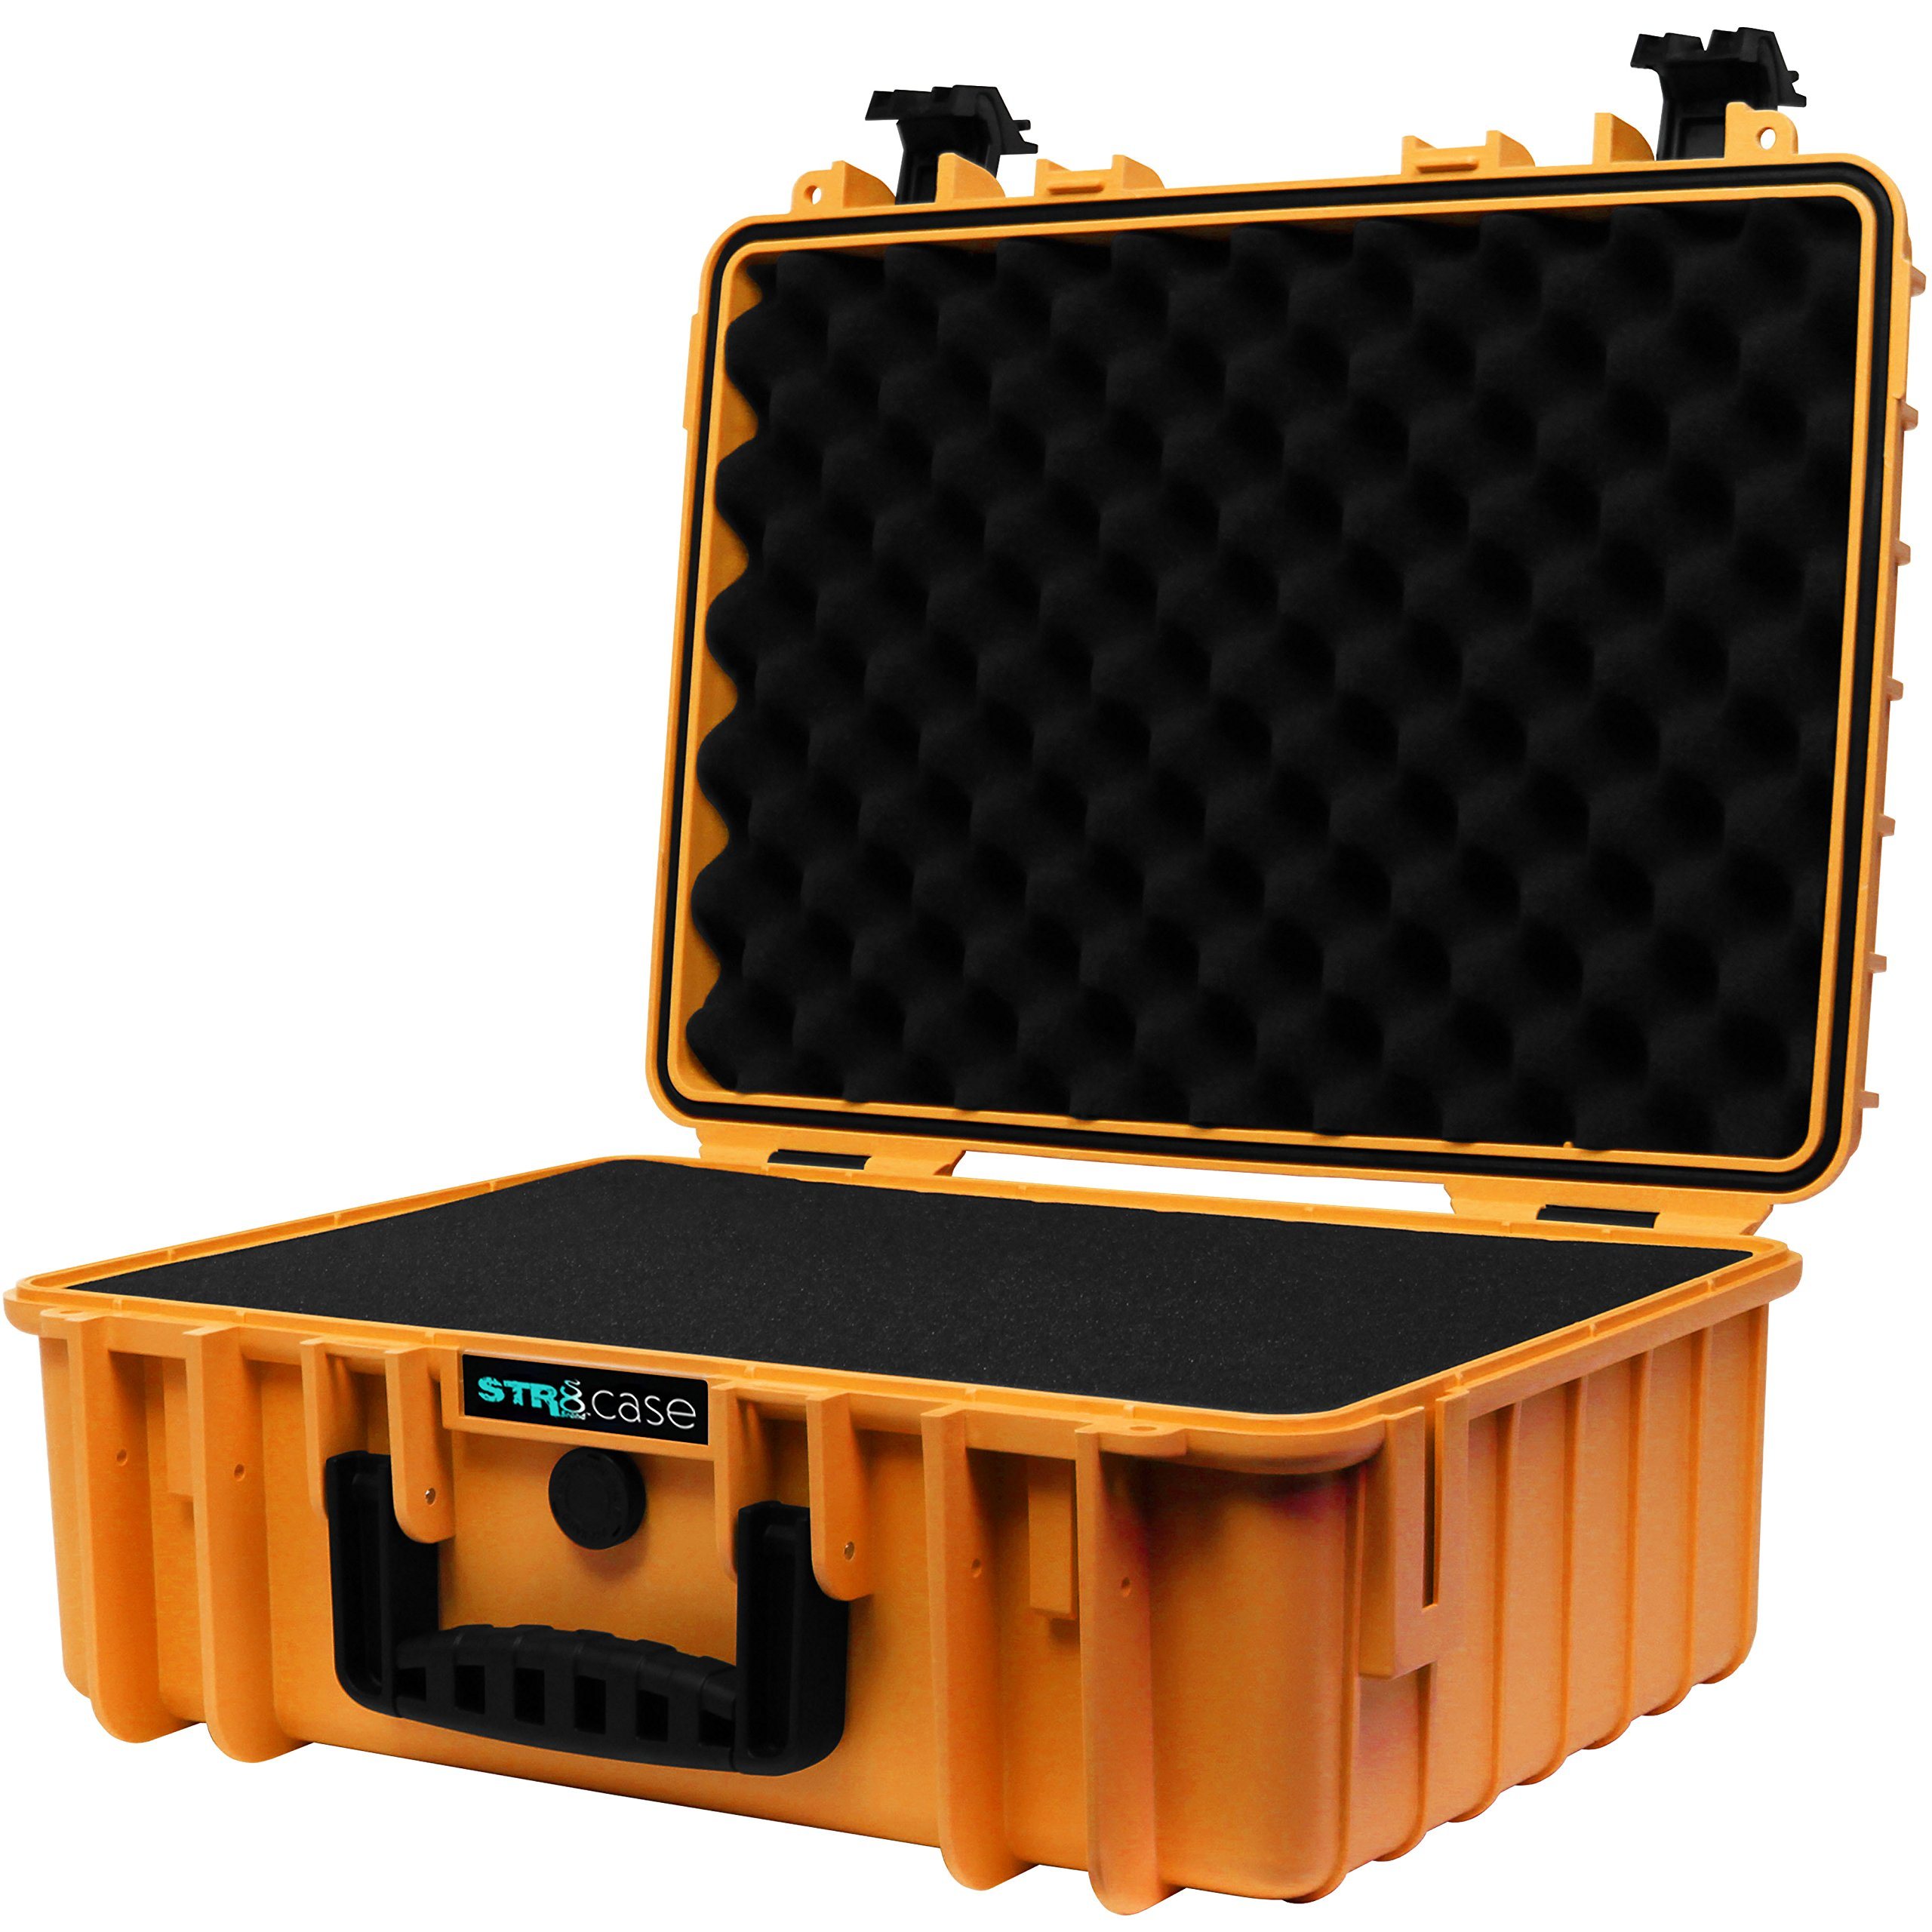 STR8Brand STR8 Brand 17'' with 3-Layer Pre Cut Grid Configuration Foam, Waterproof, Smell Proof, Lockable, Glass Protector, Outdoor Carrying Case for Multi-Purpose (Tangie Orange)